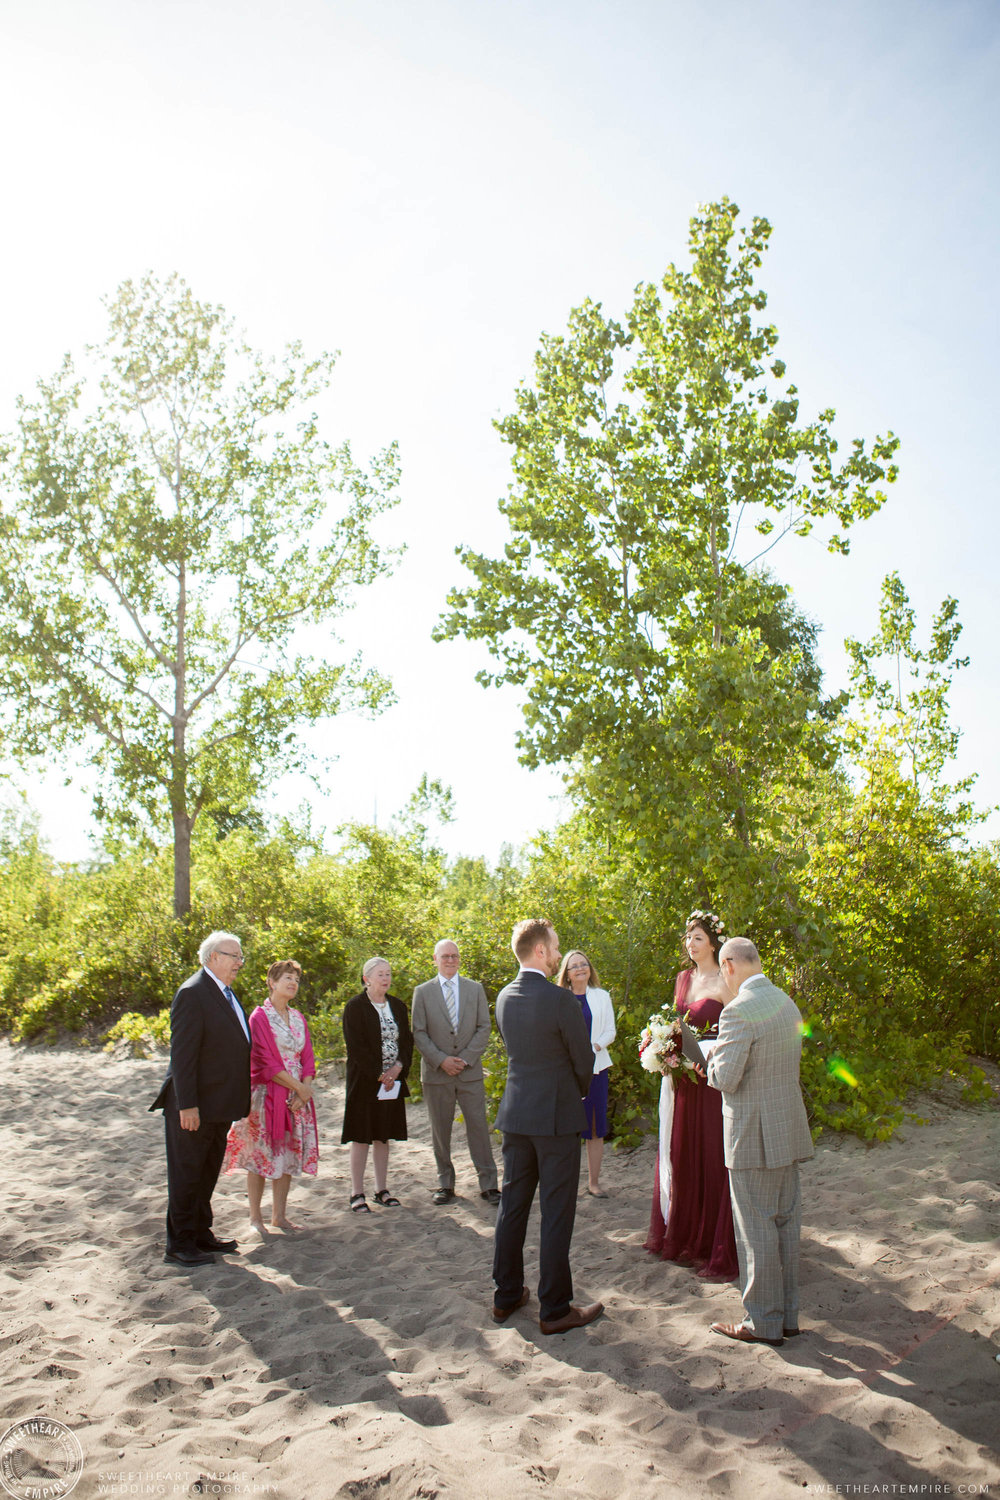 A small Toronto Island wedding ceremony on the beach.